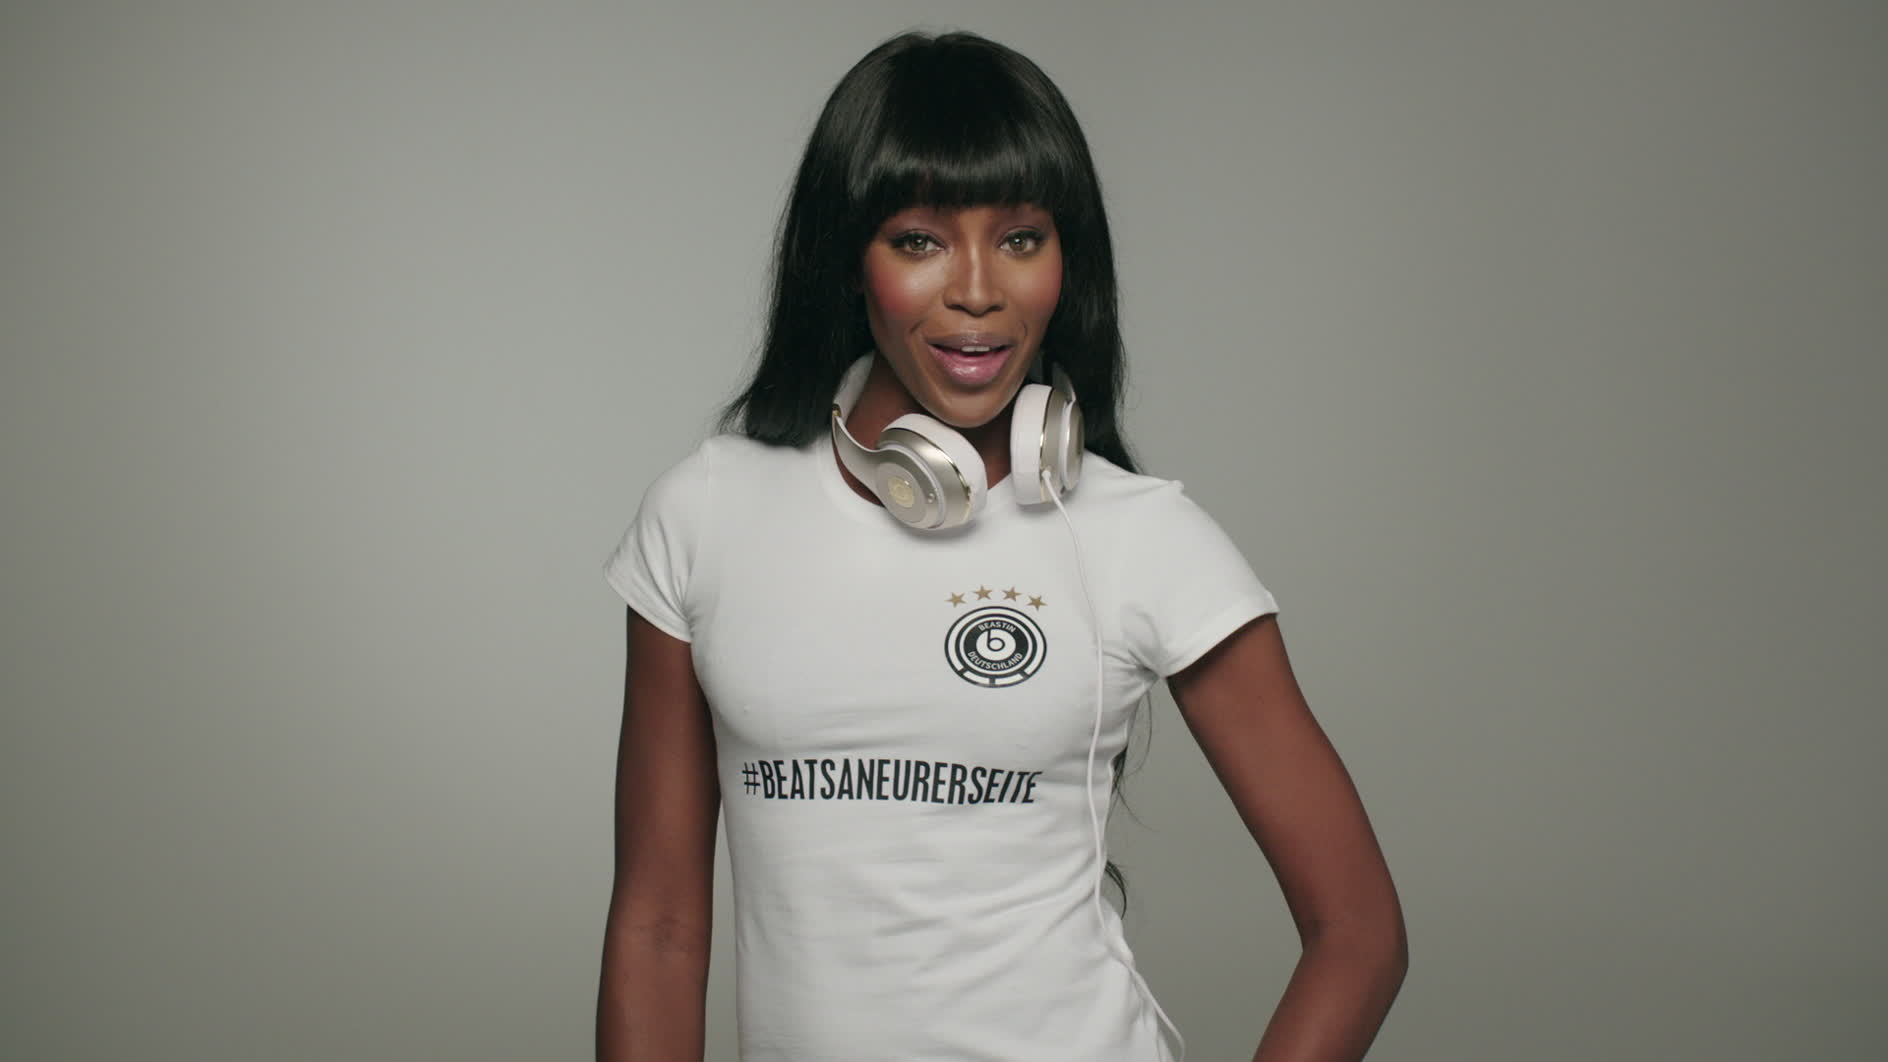 Naomi Campbell and Beats by Dre wish Germany good luck in the World Cup Final.